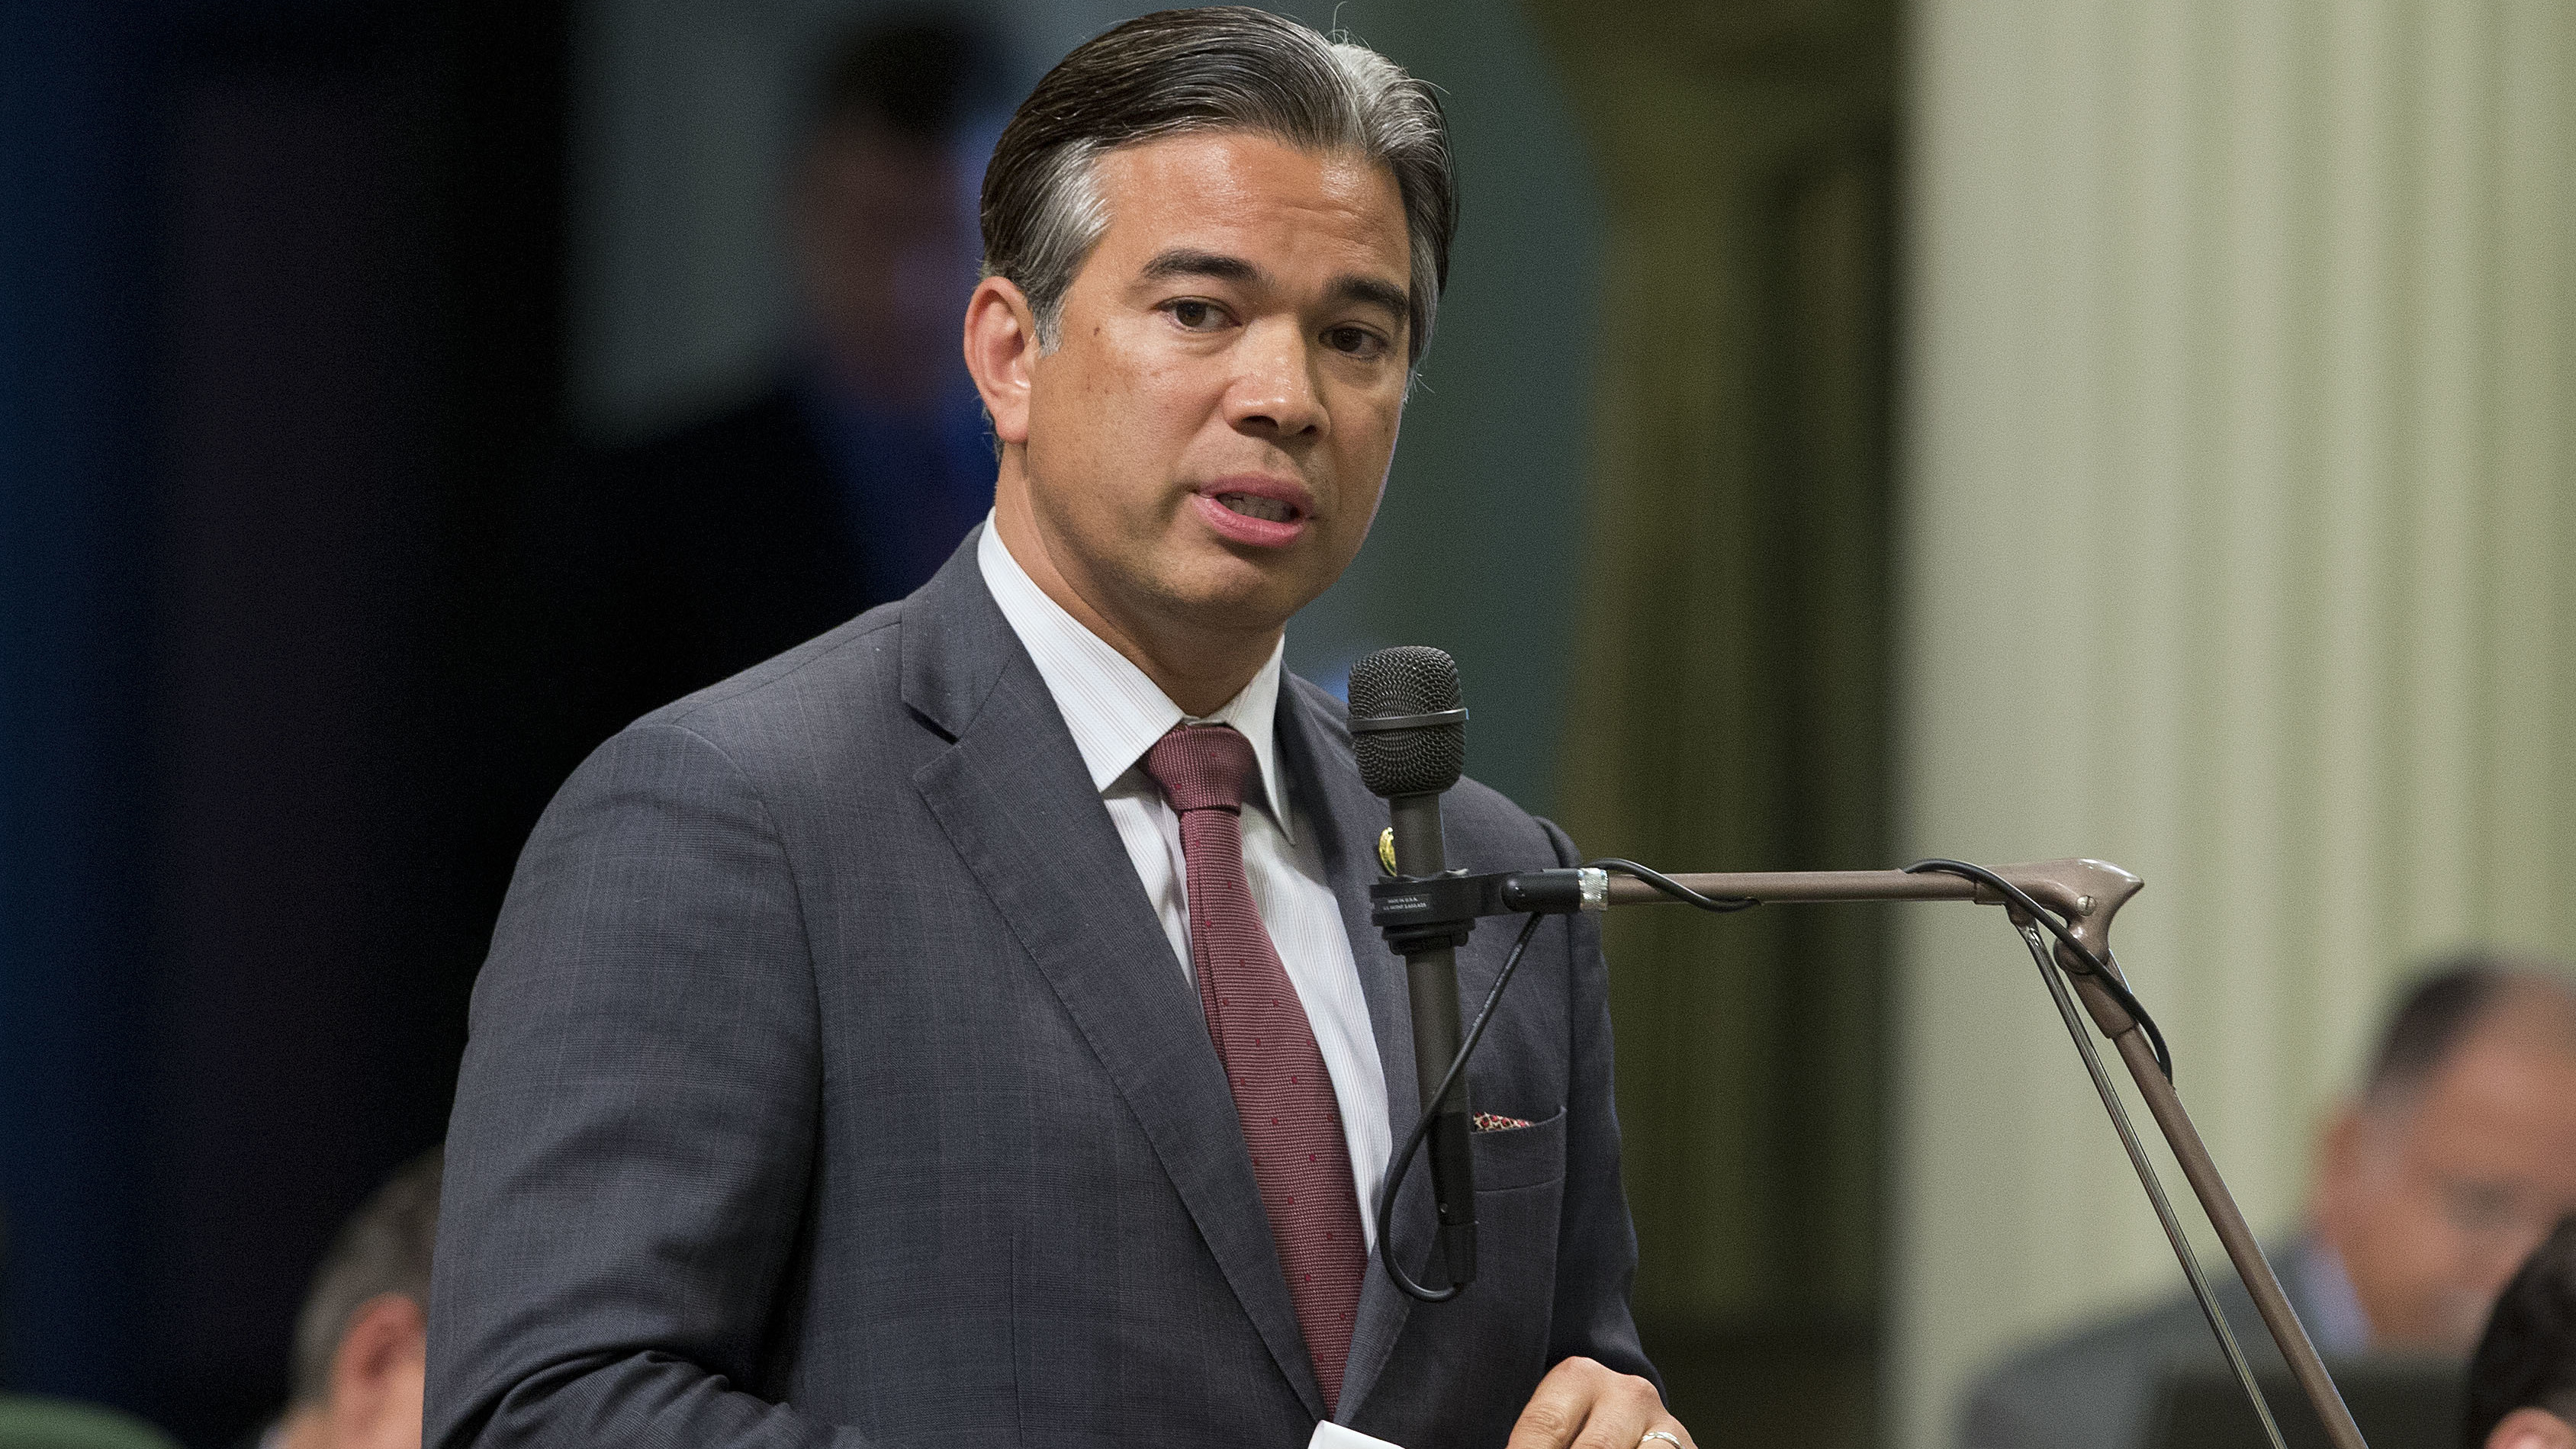 The Buzz | California may end ban on communists in government jobs